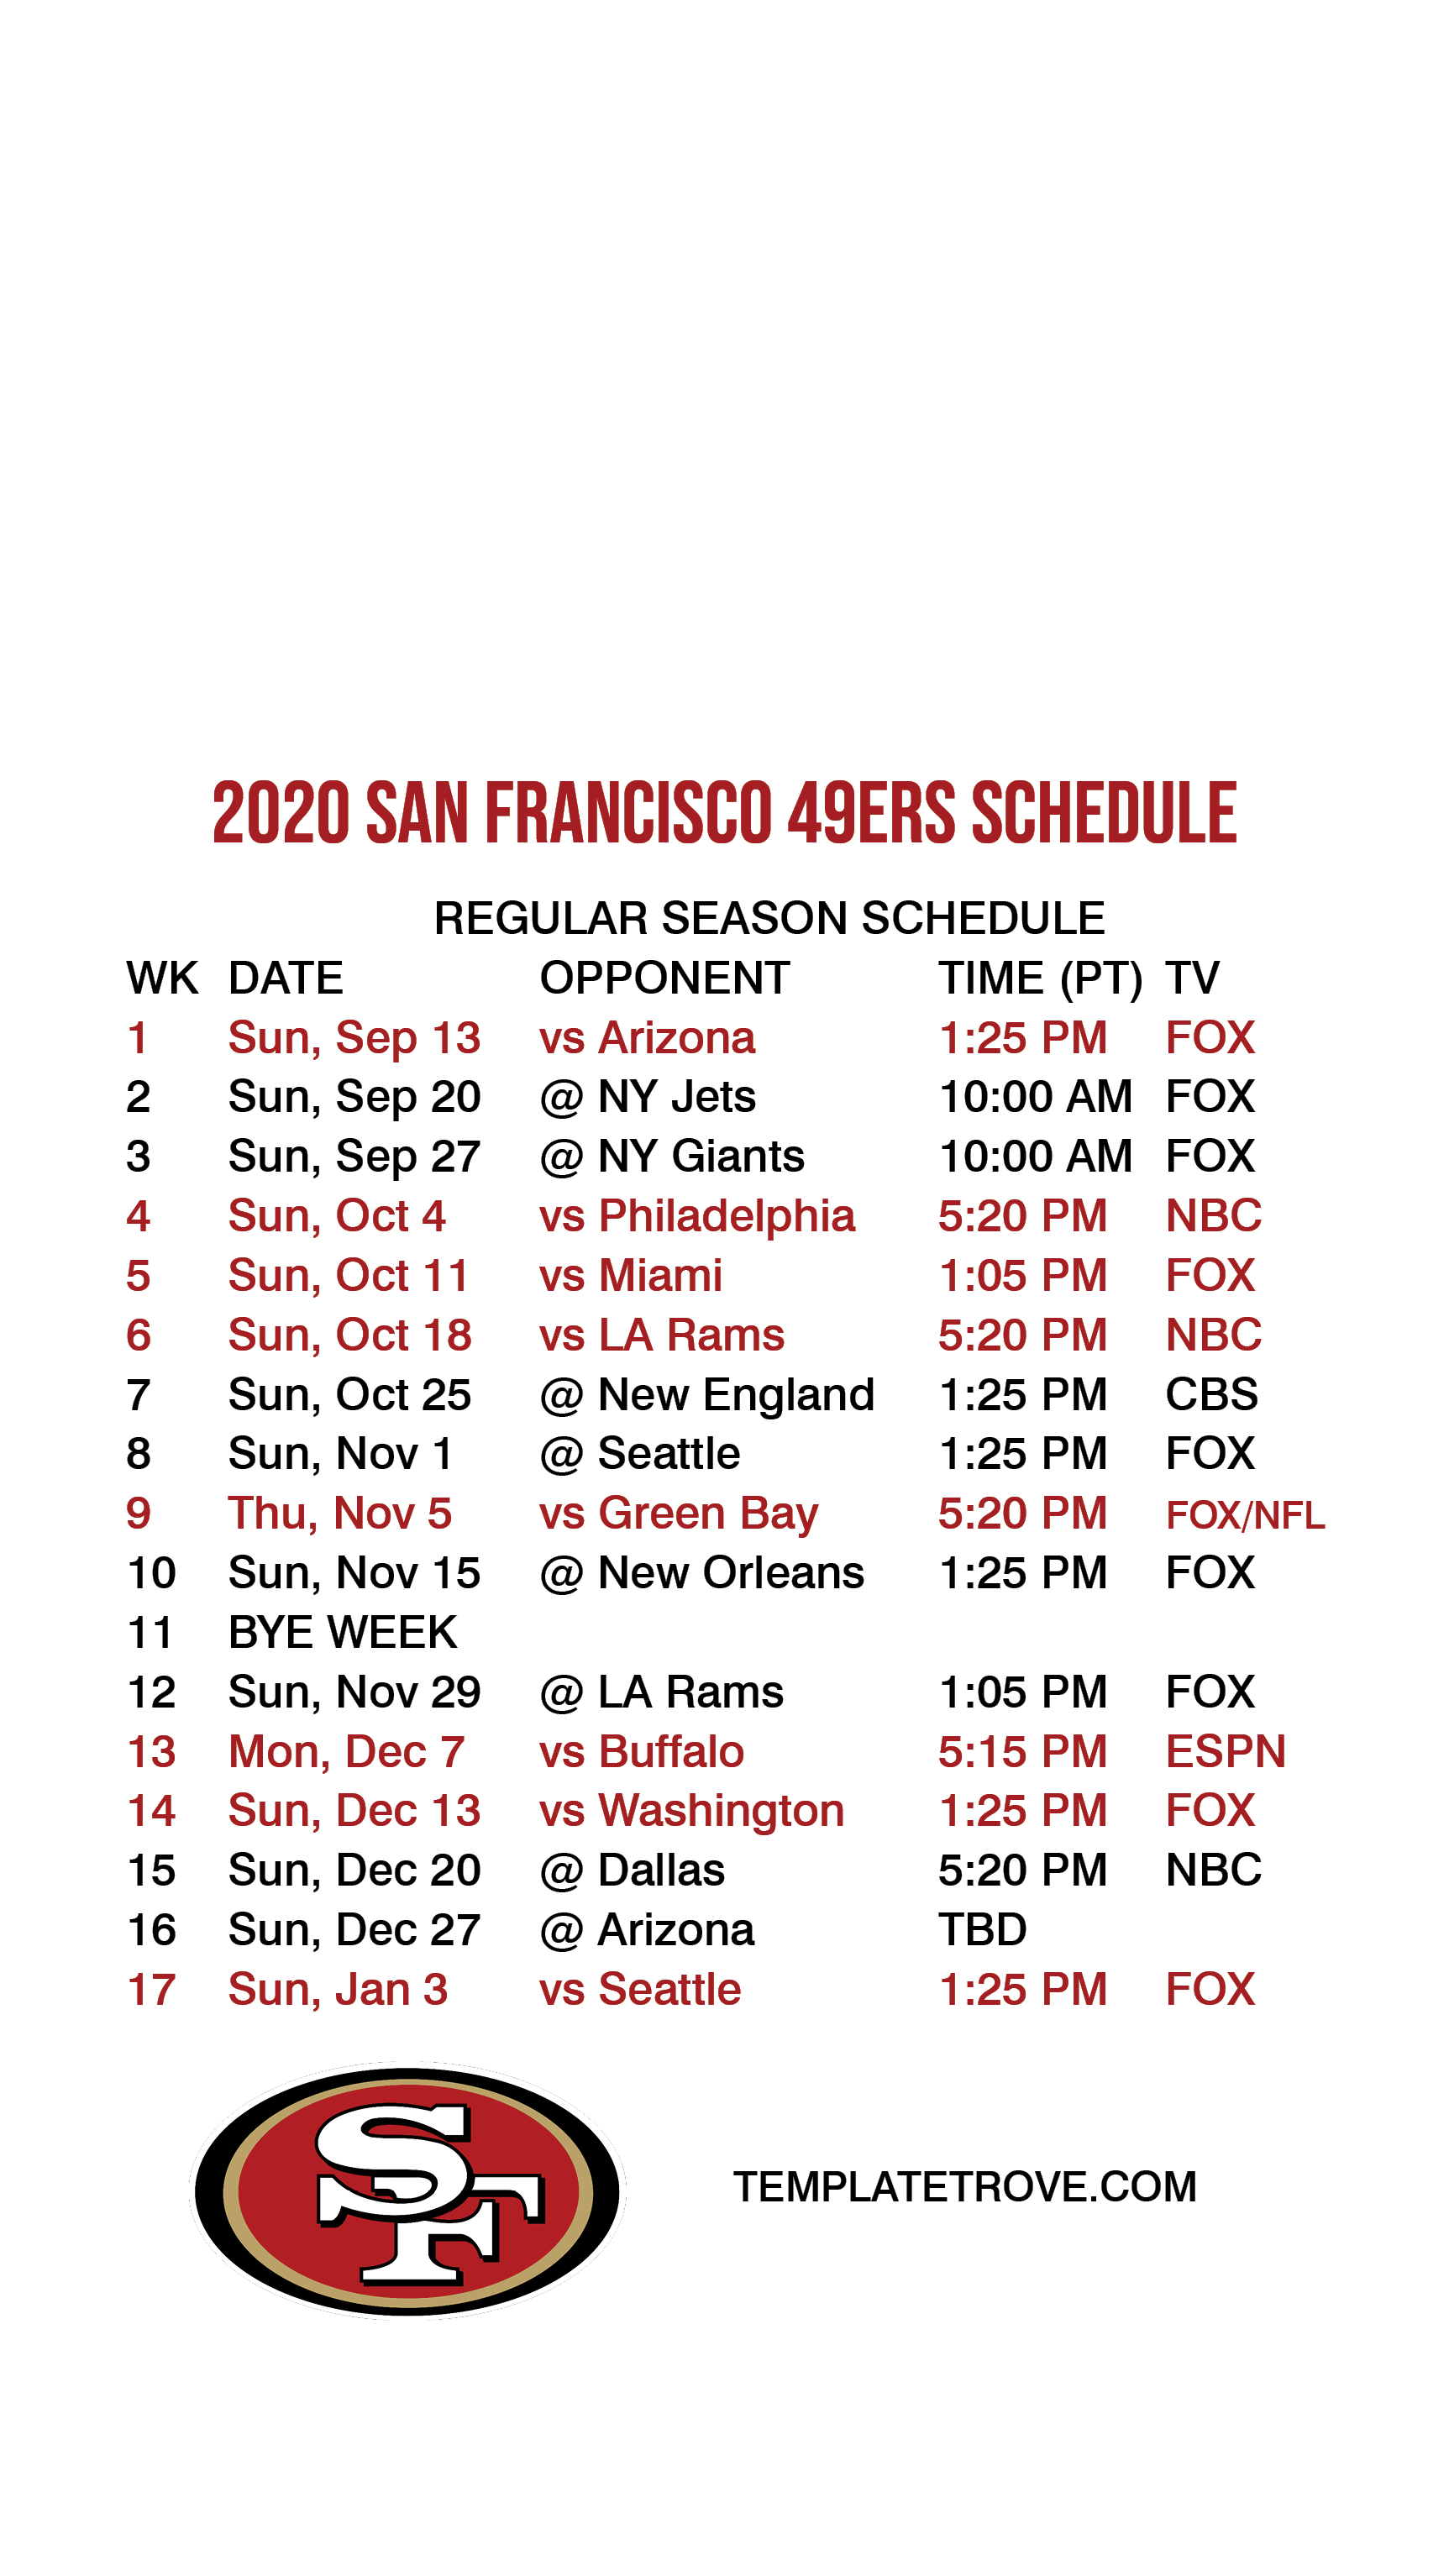 2020 2021 San Francisco 49ers Lock Screen Schedule For